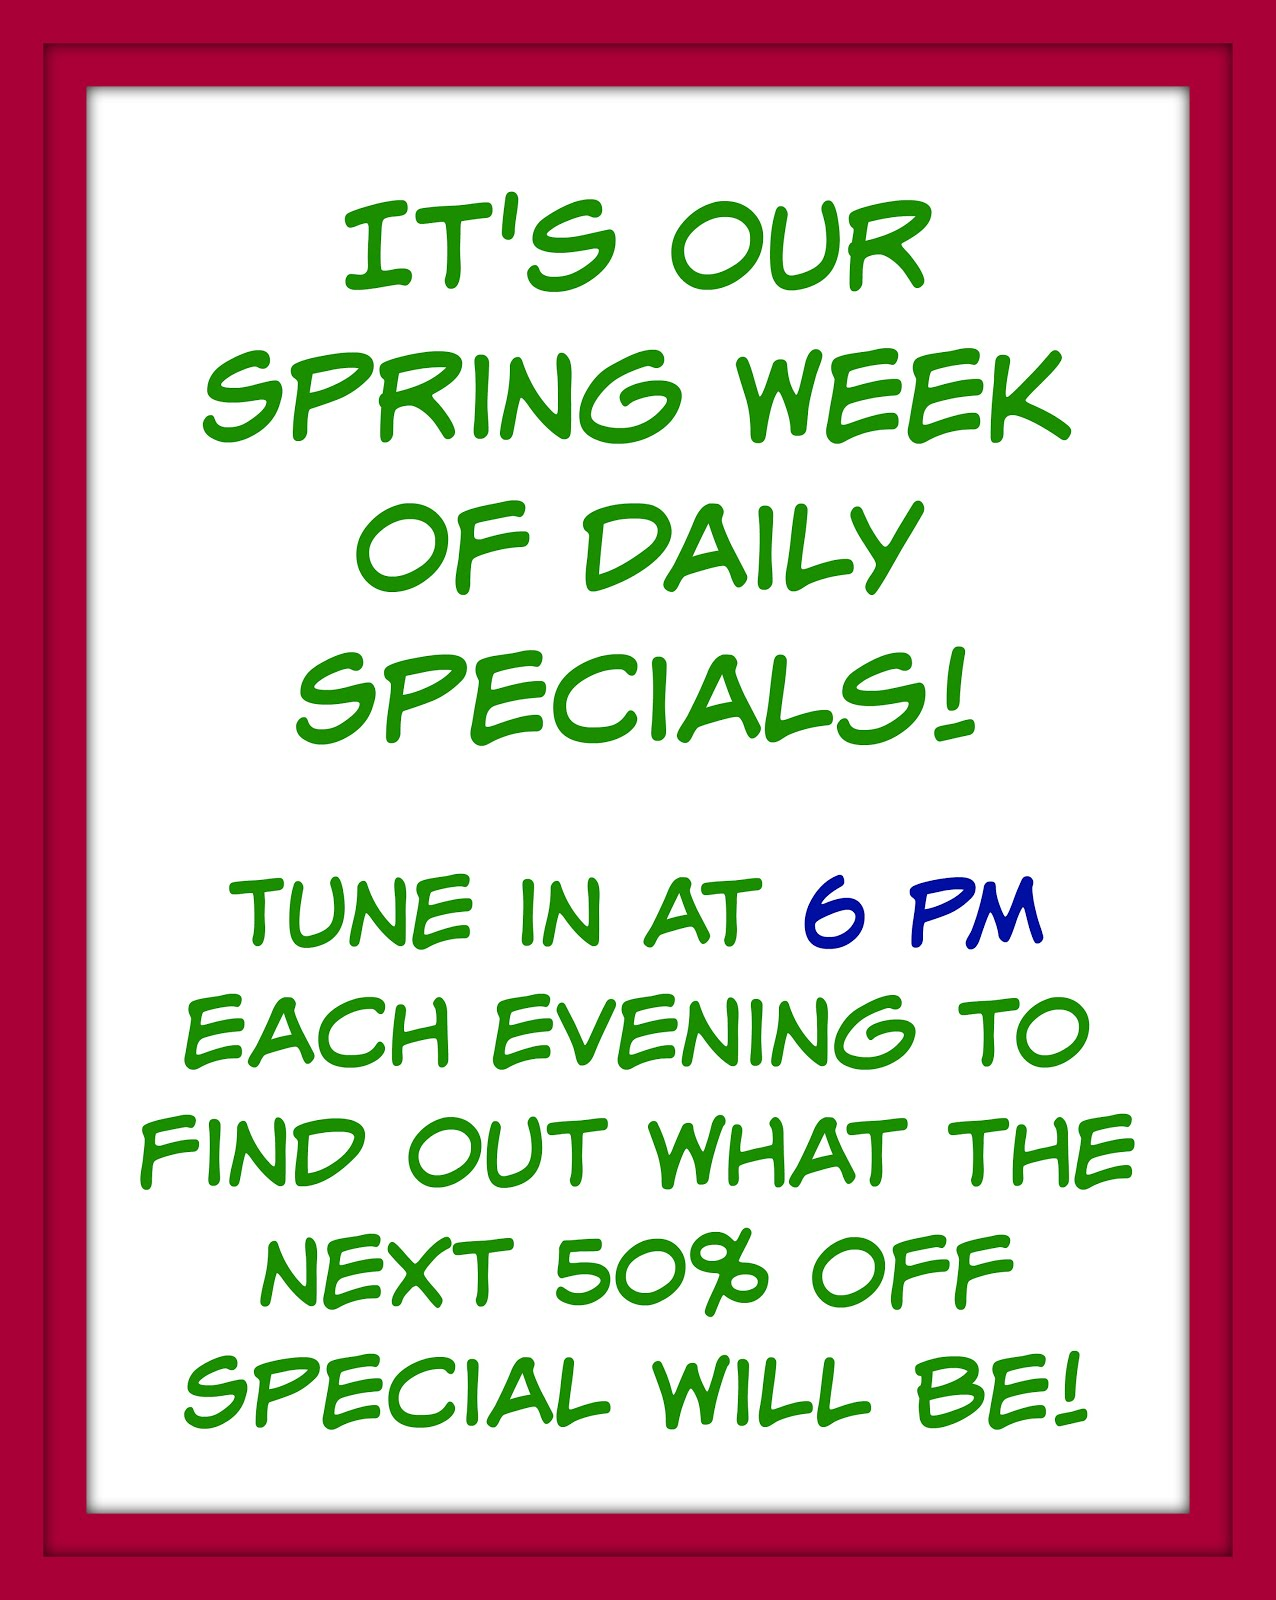 Our Specials Week!